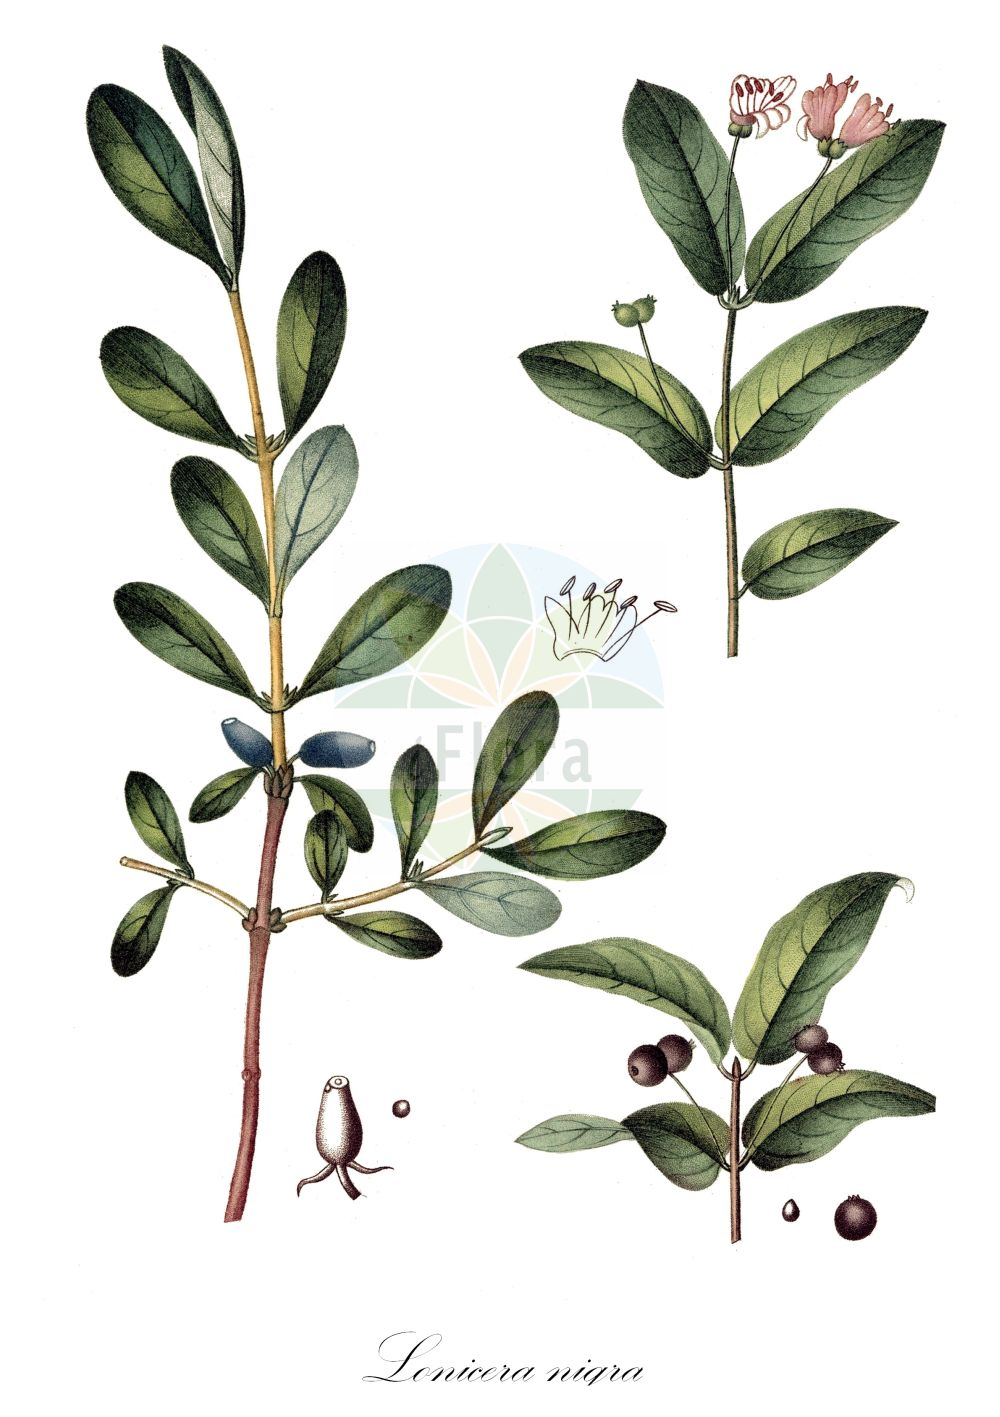 Historische Abbildung von Lonicera nigra (Schwarze Heckenkirsche - Black-berried Honeysuckle). Das Bild zeigt Blatt, Bluete, Frucht und Same. ---- Historical Drawing of Lonicera nigra (Schwarze Heckenkirsche - Black-berried Honeysuckle).The image is showing leaf, flower, fruit and seed.(Lonicera nigra,Schwarze Heckenkirsche,Black-berried Honeysuckle,Lonicera carpatica,,Schwarzes Geissblatt,Black-fruited Honeysuckle,Lonicera,Heckenkirsche,Honeysuckle,Caprifoliaceae,Geissblattgewaechse,Honeysuckle family,Blatt,Bluete,Frucht,Same,leaf,flower,fruit,seed,de Saint-Hilaire (1828-1833))